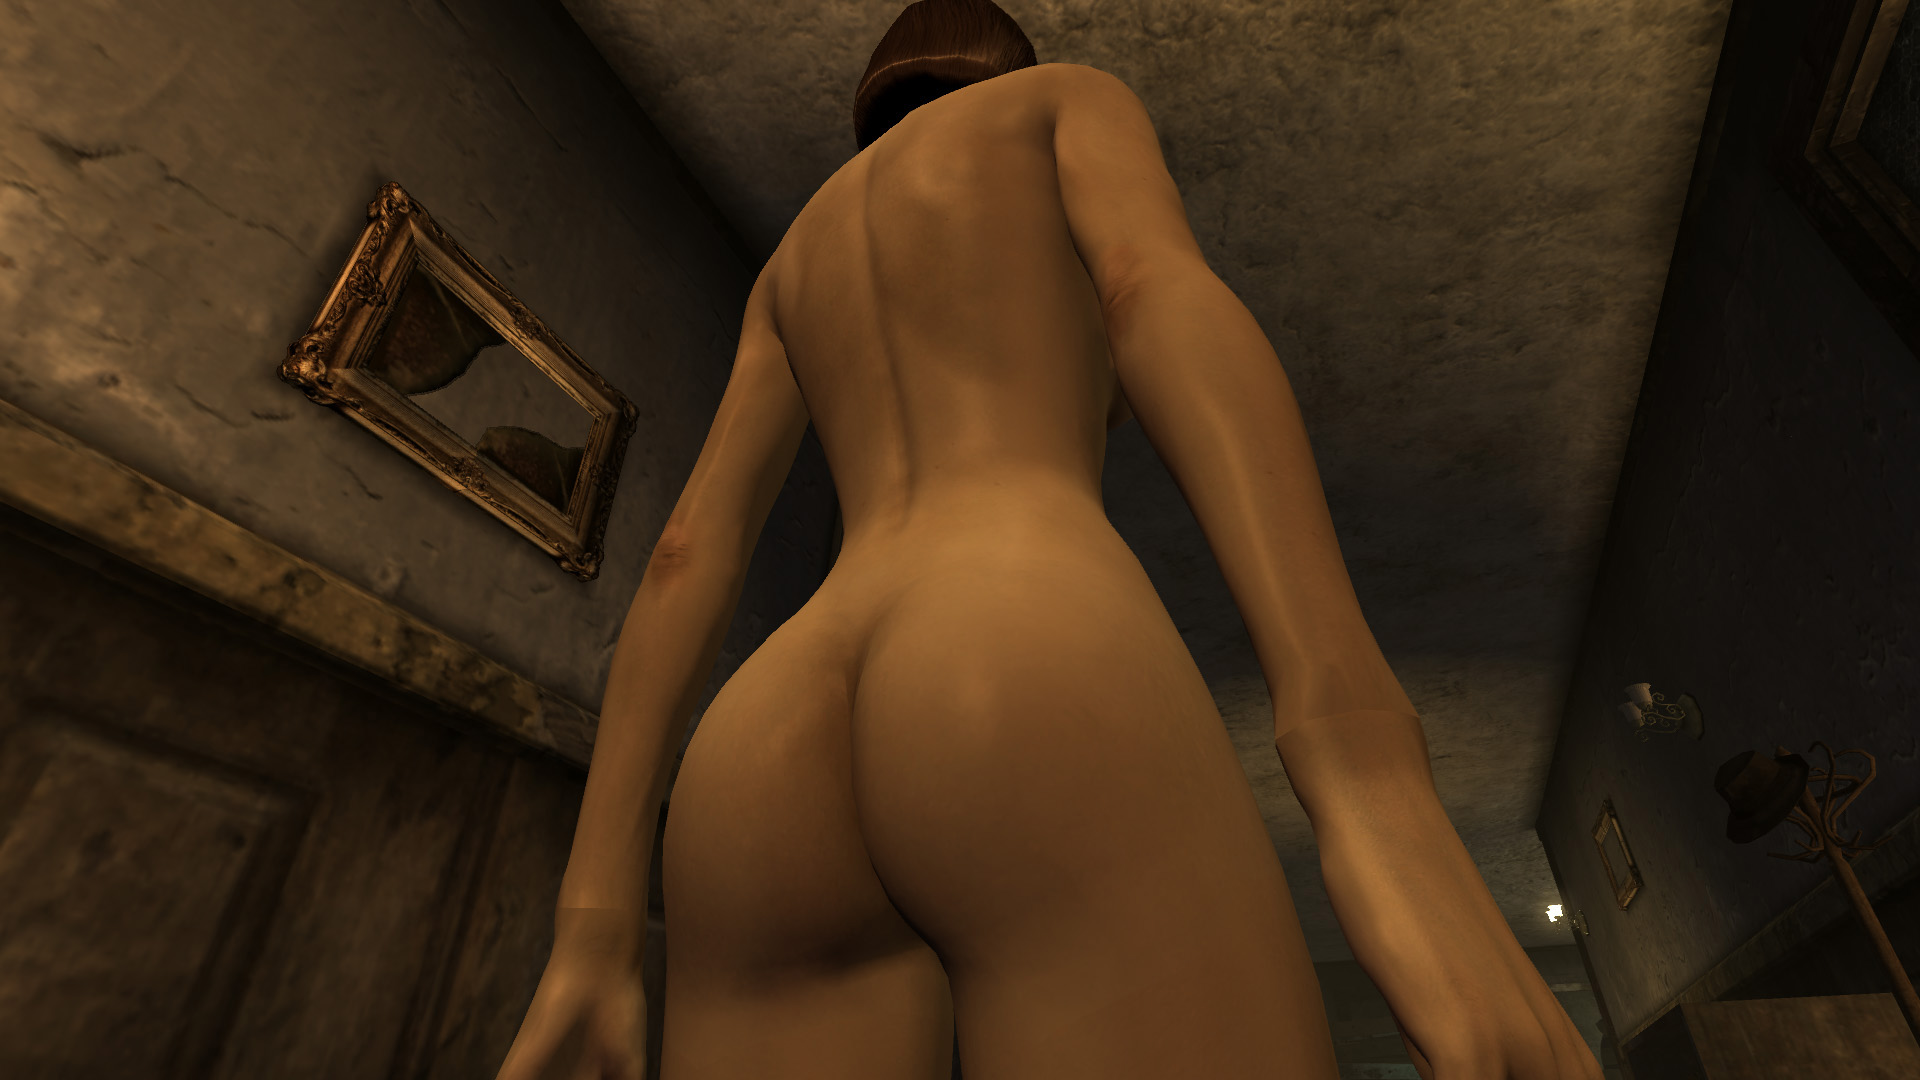 Naked fallout girls nsfw tube